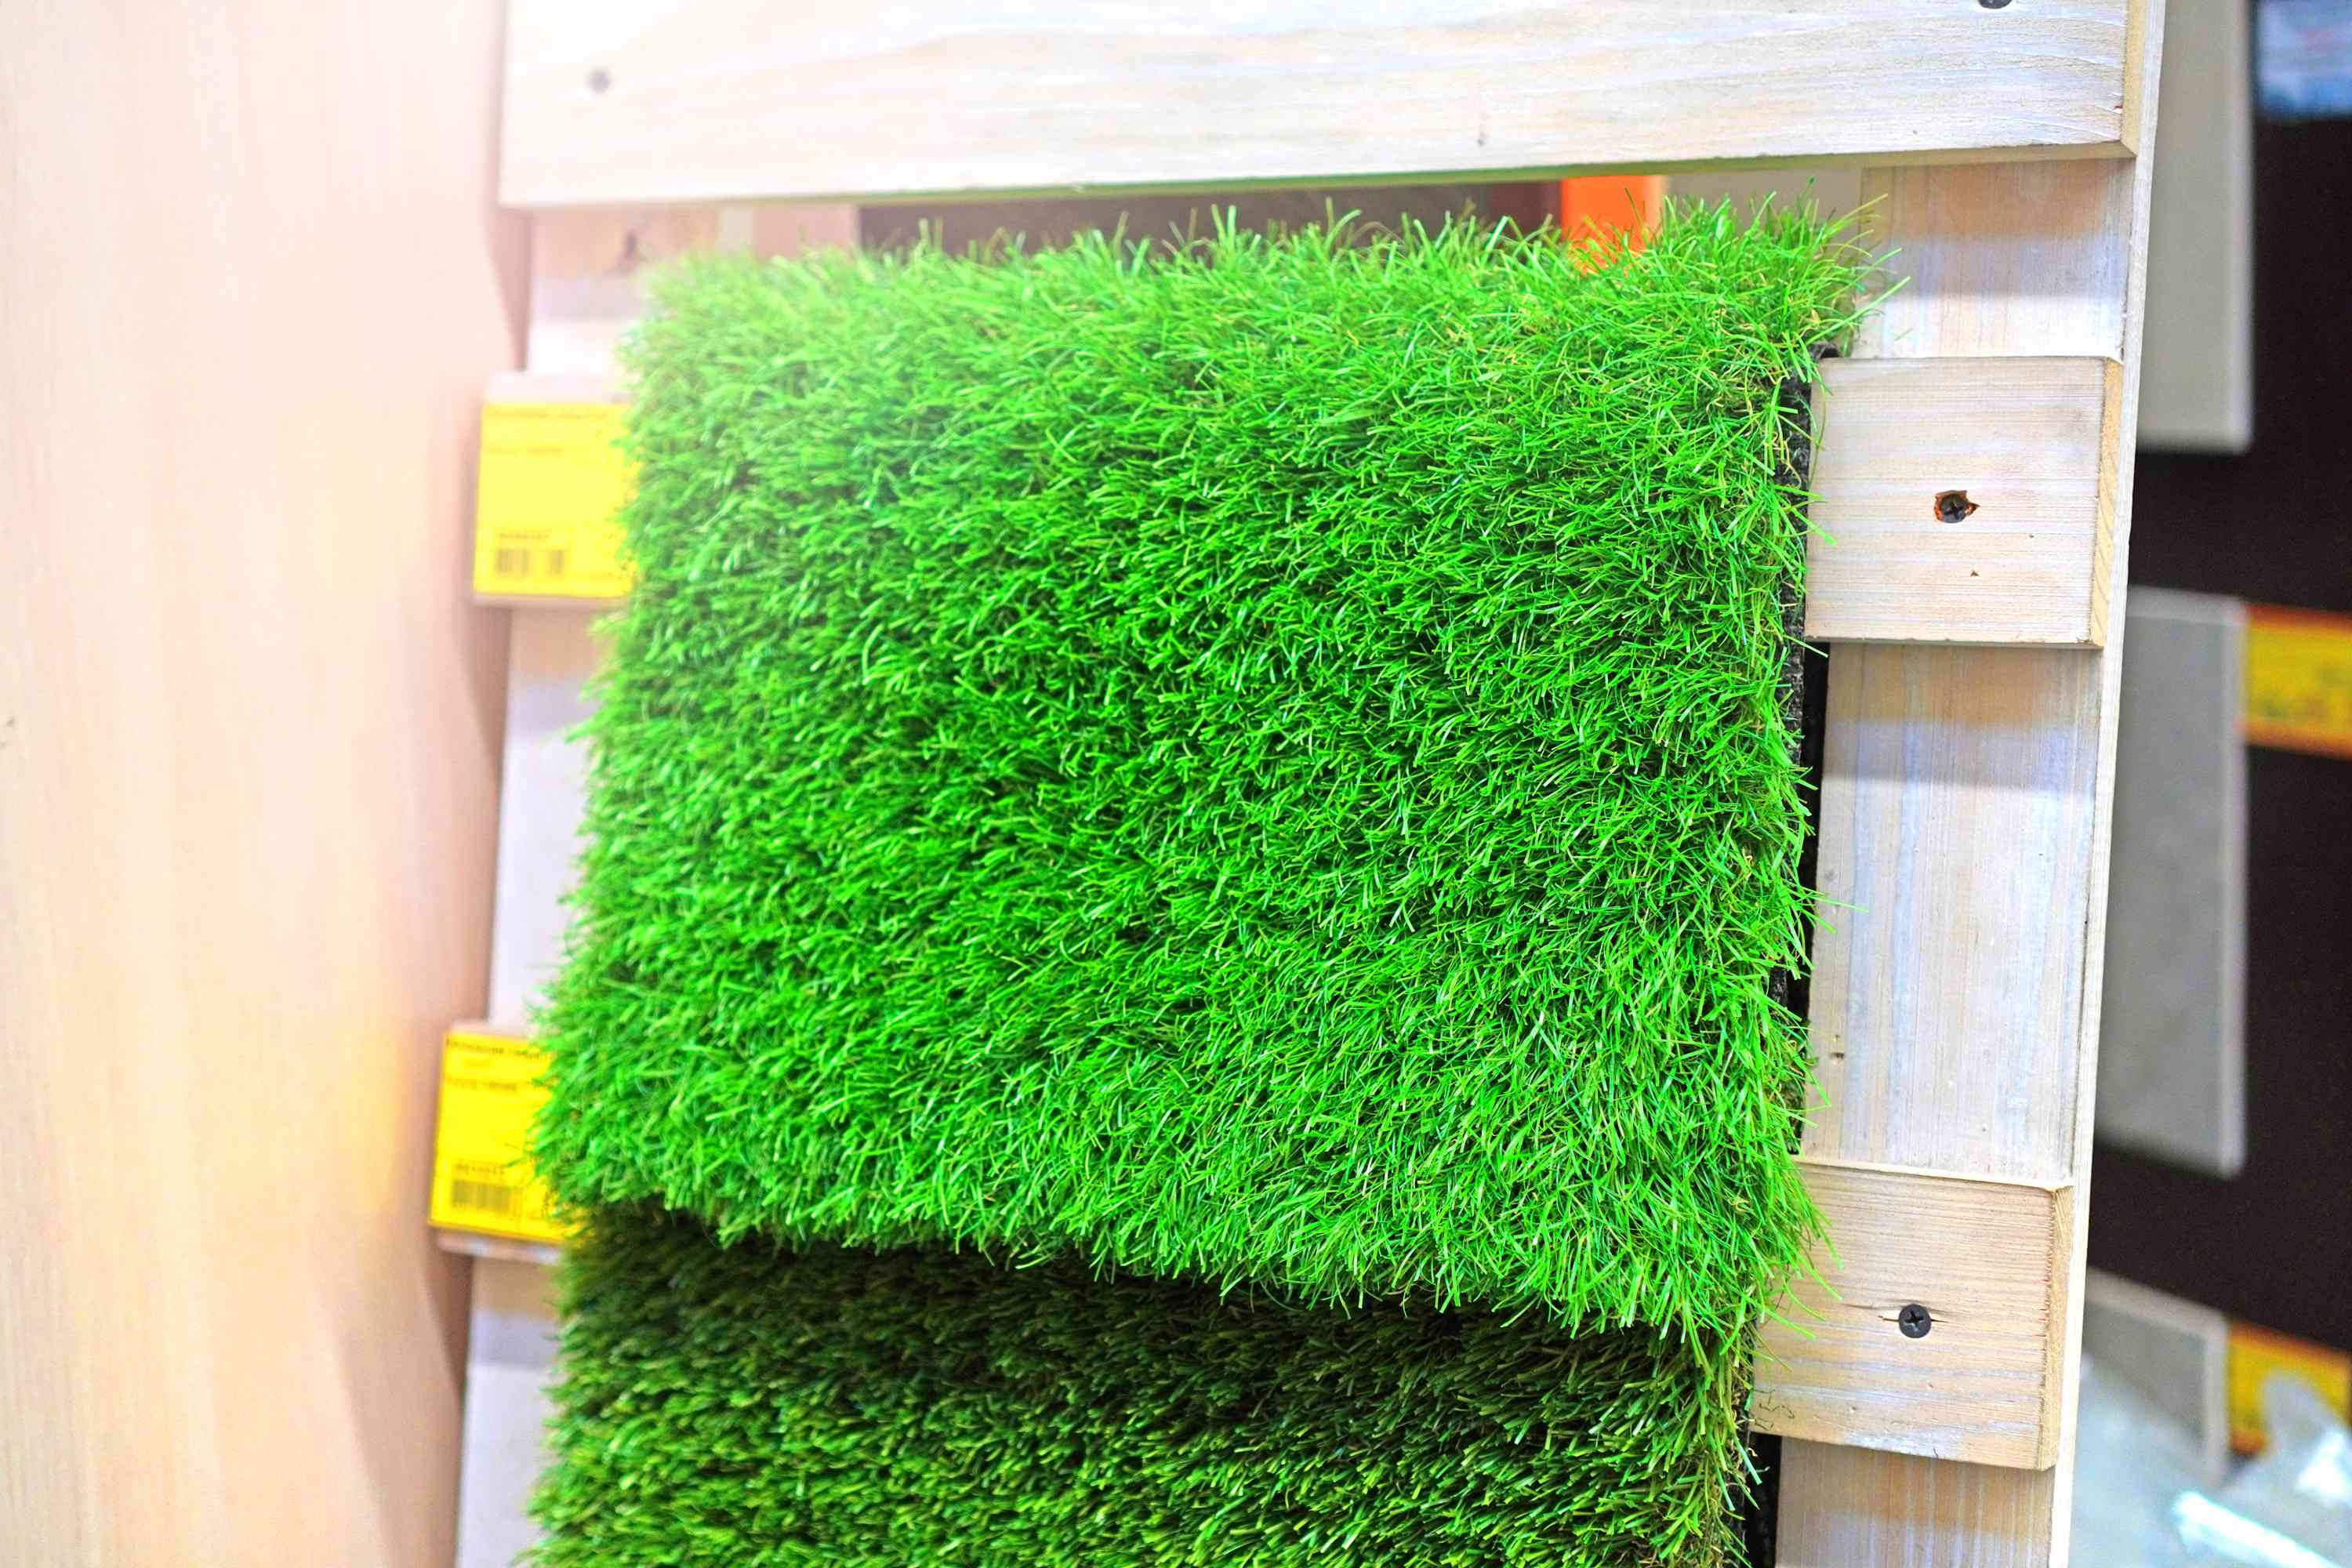 Artificial grass sample hanging on a wood display.